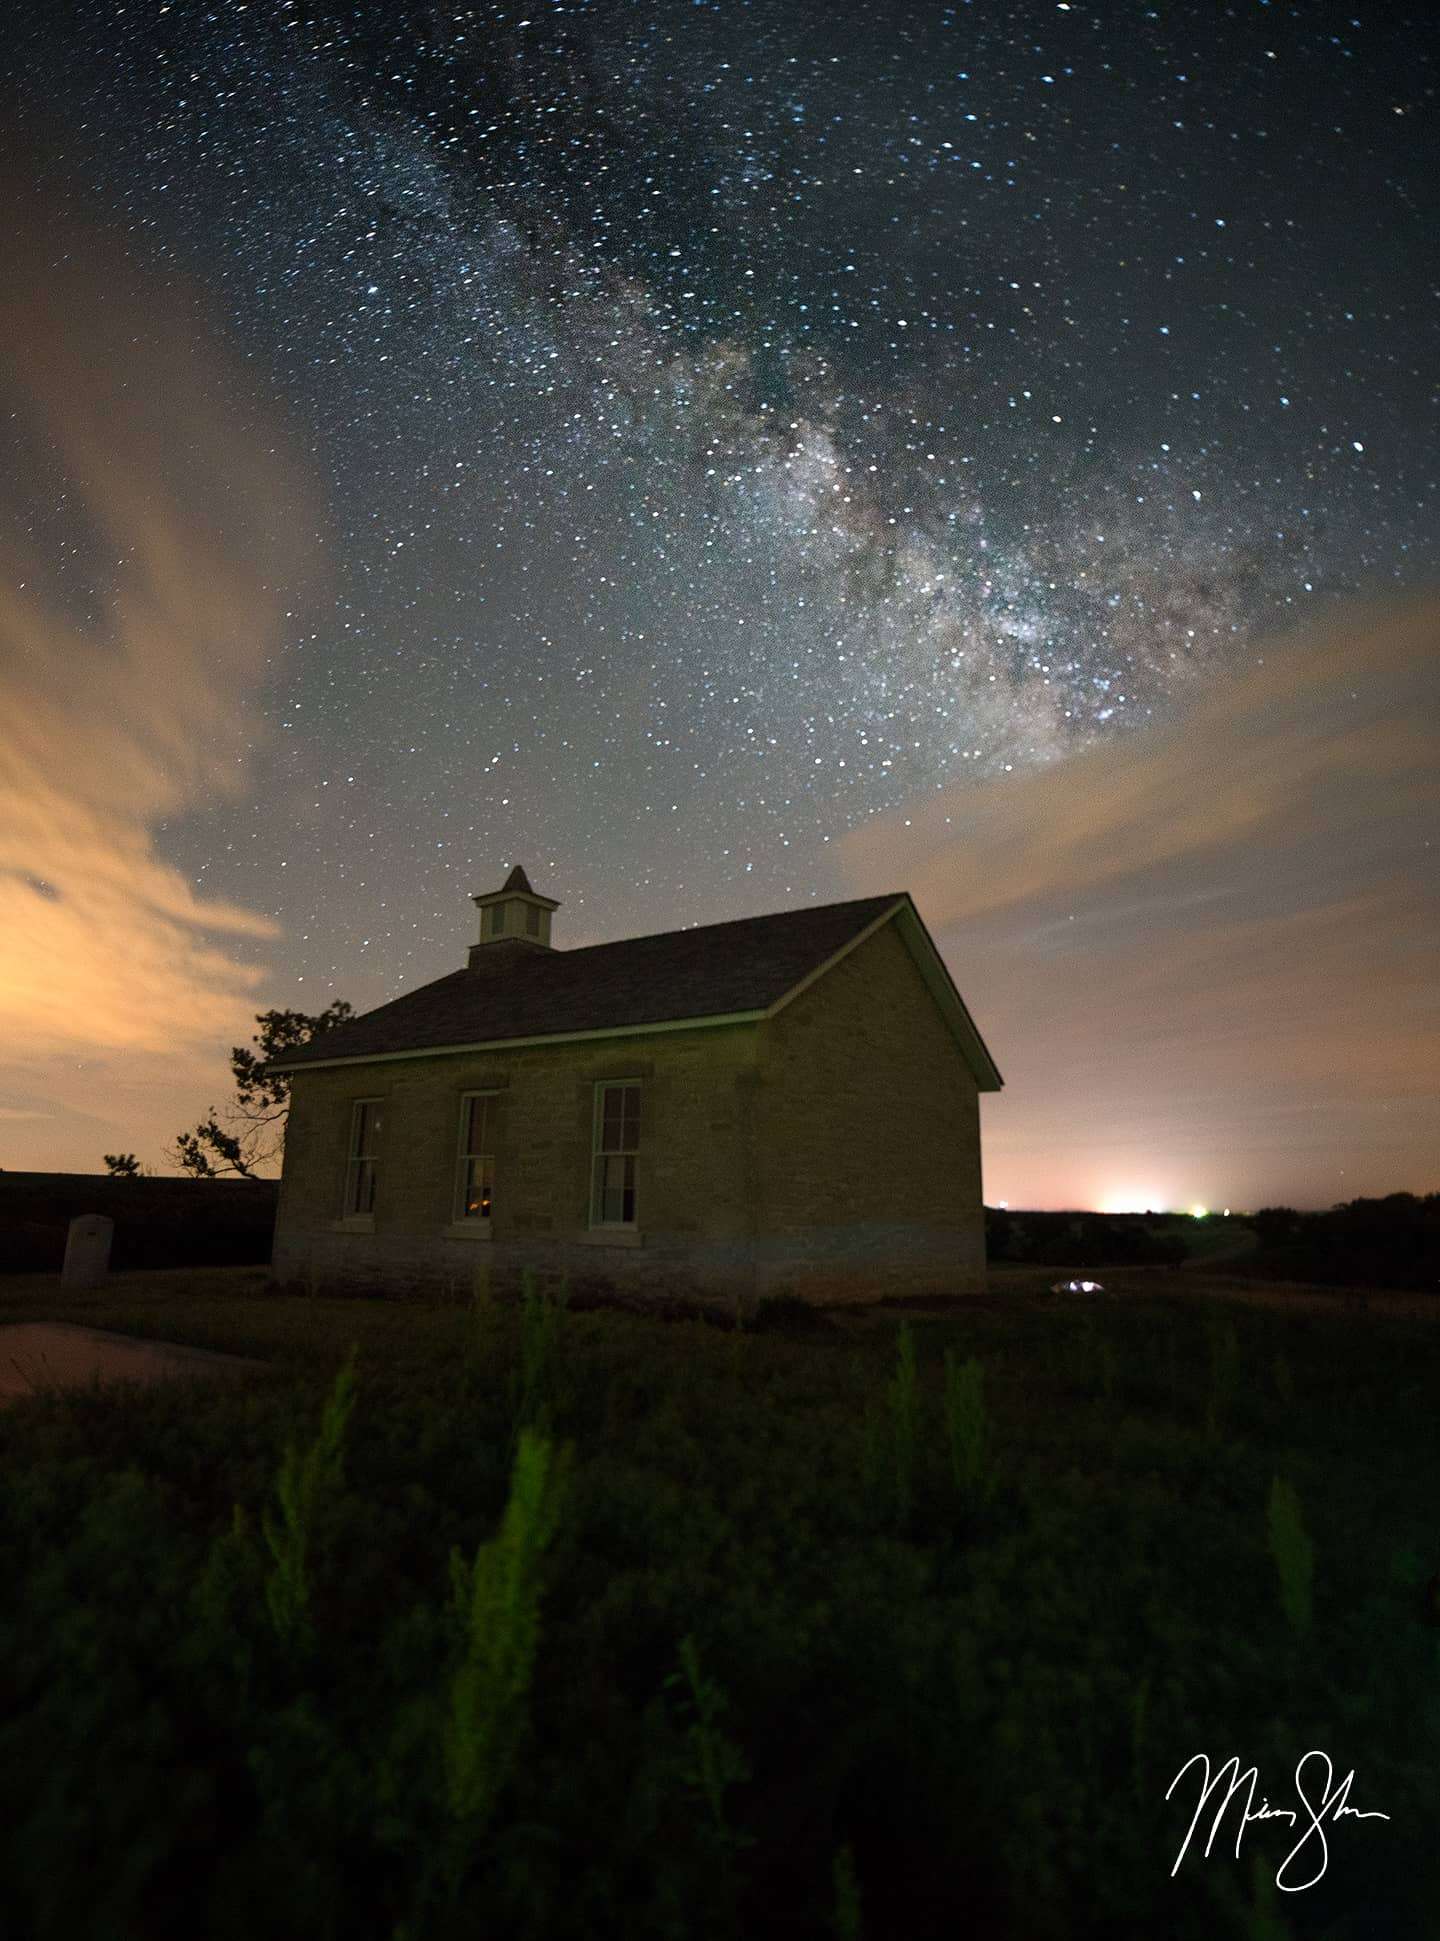 Open edition fine art print of Lower Fox Creek Schoolhouse Milky Way from Mickey Shannon Photography. Location: Lower Fox Creek Schoolhouse, Tallgrass Prairie National Preserve, Kansas